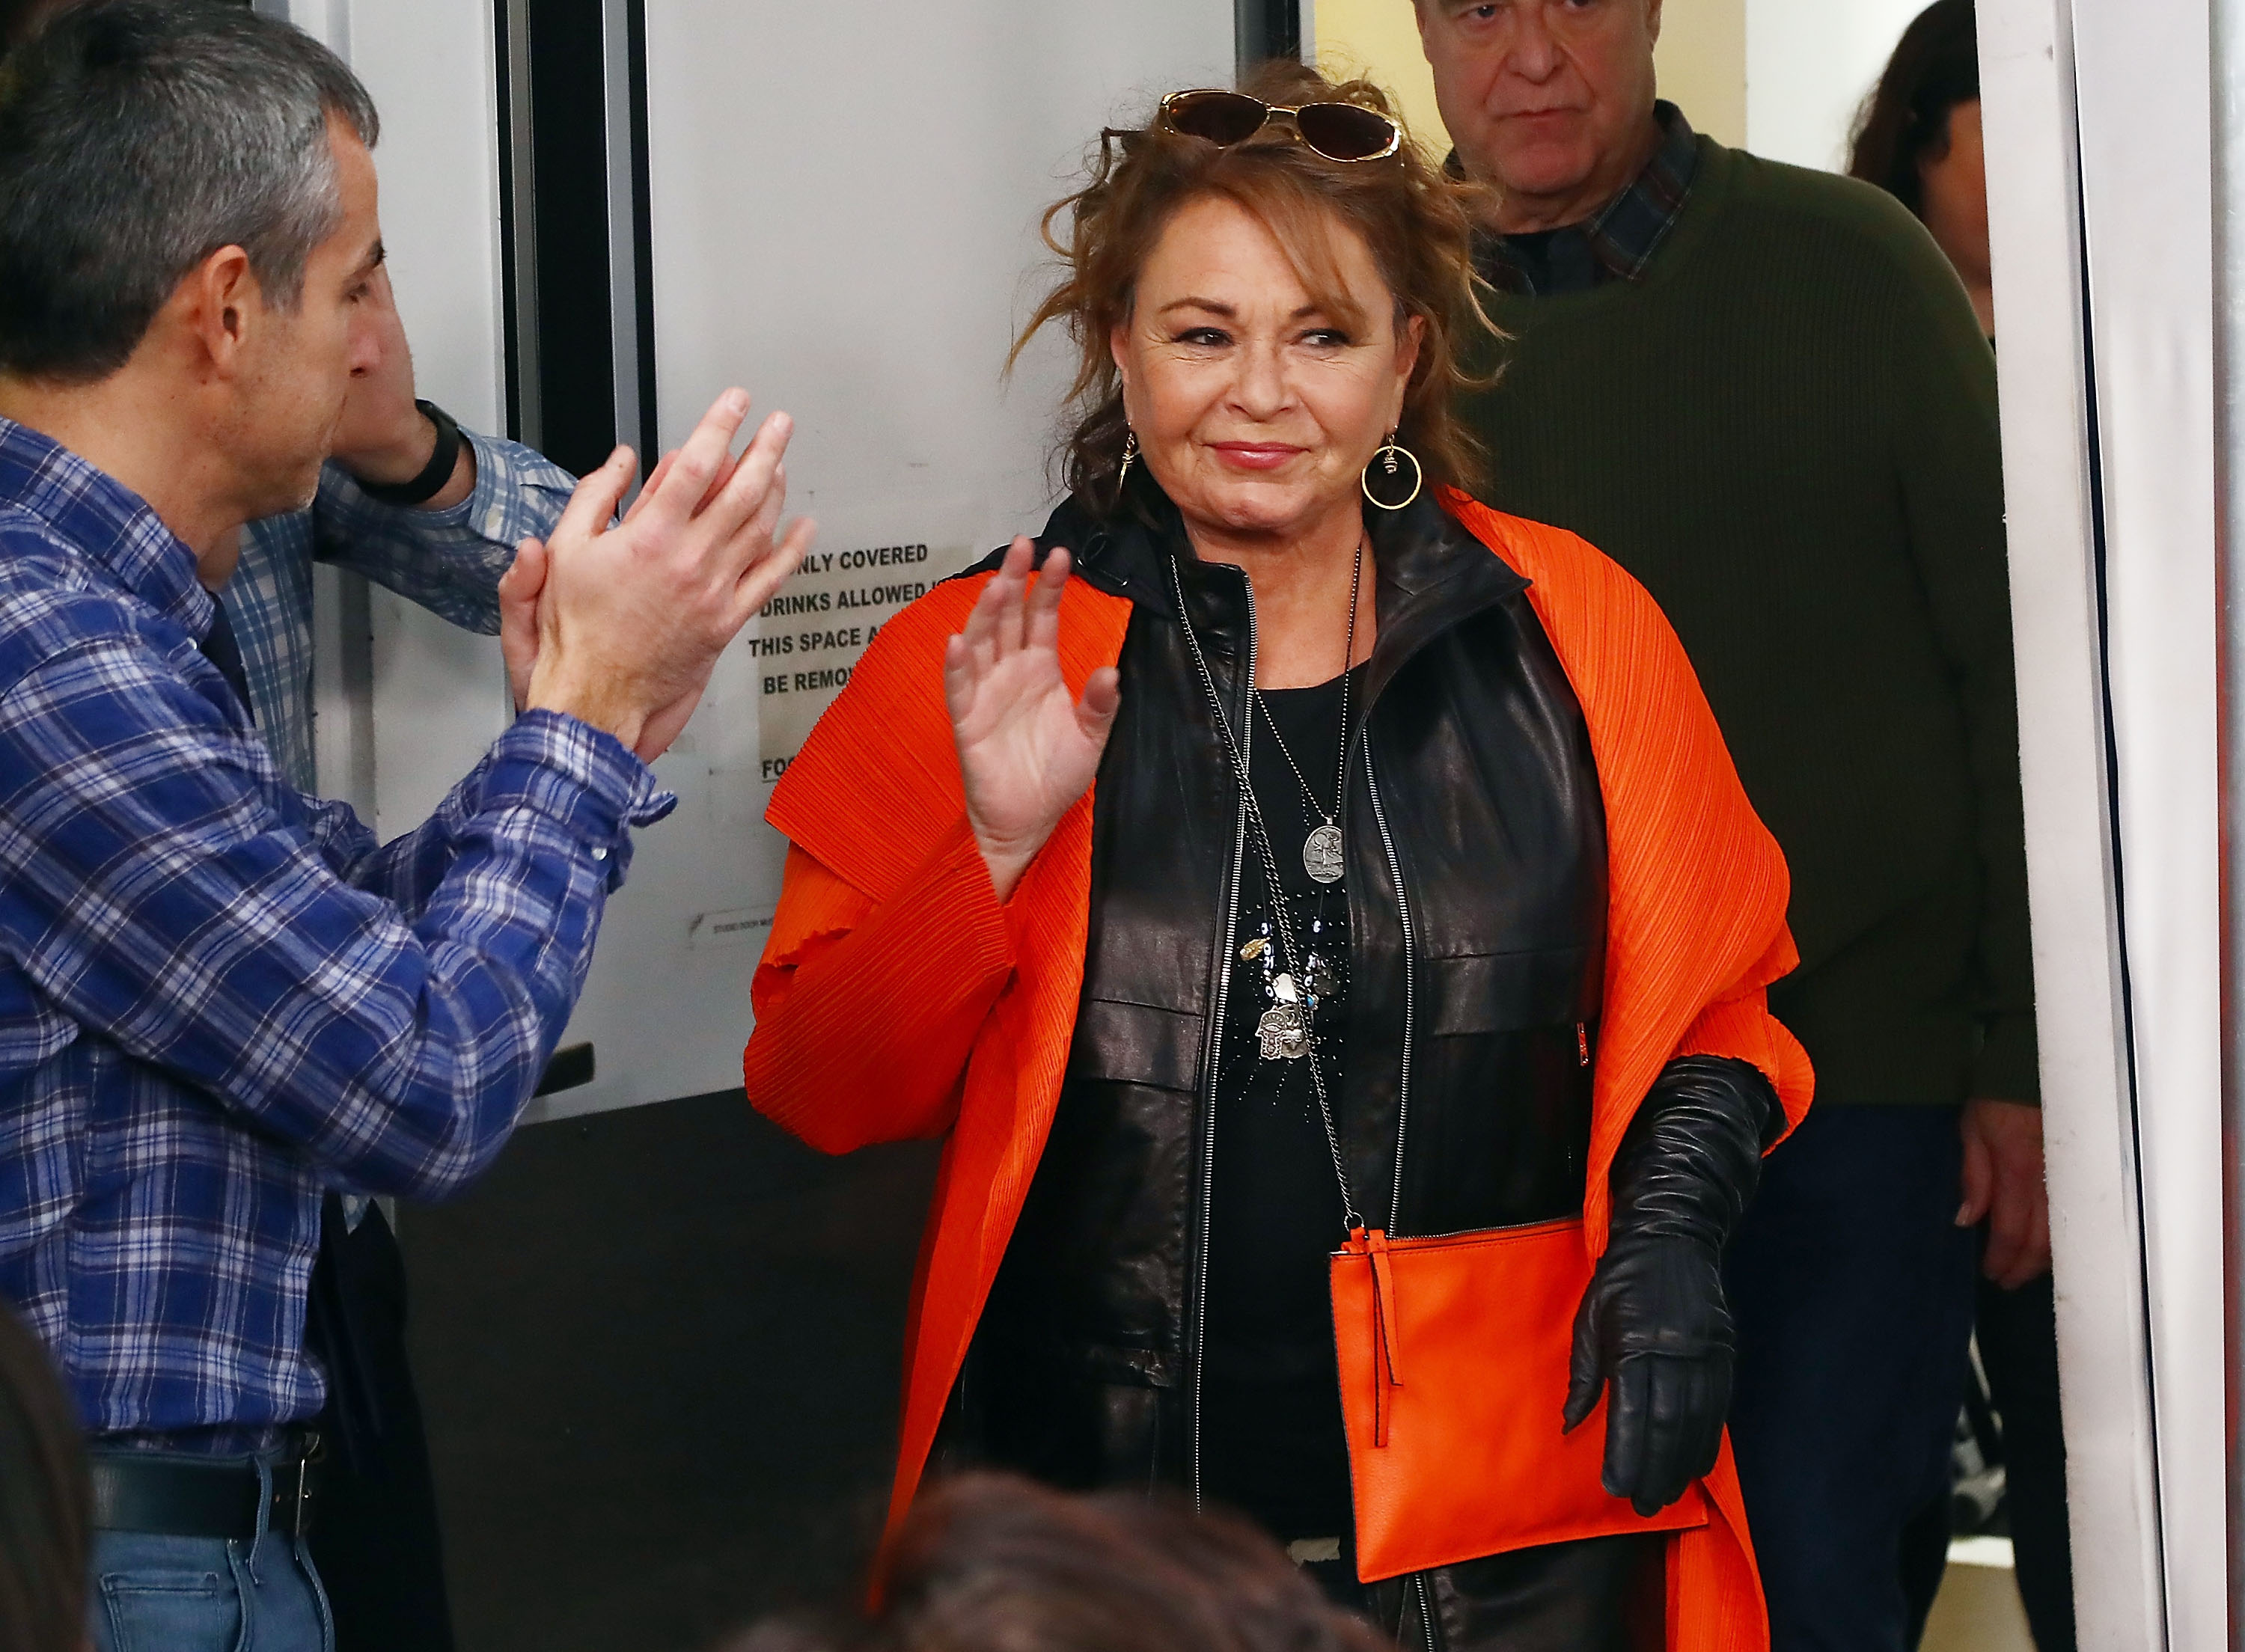 on March 27, 2018 in New York City.